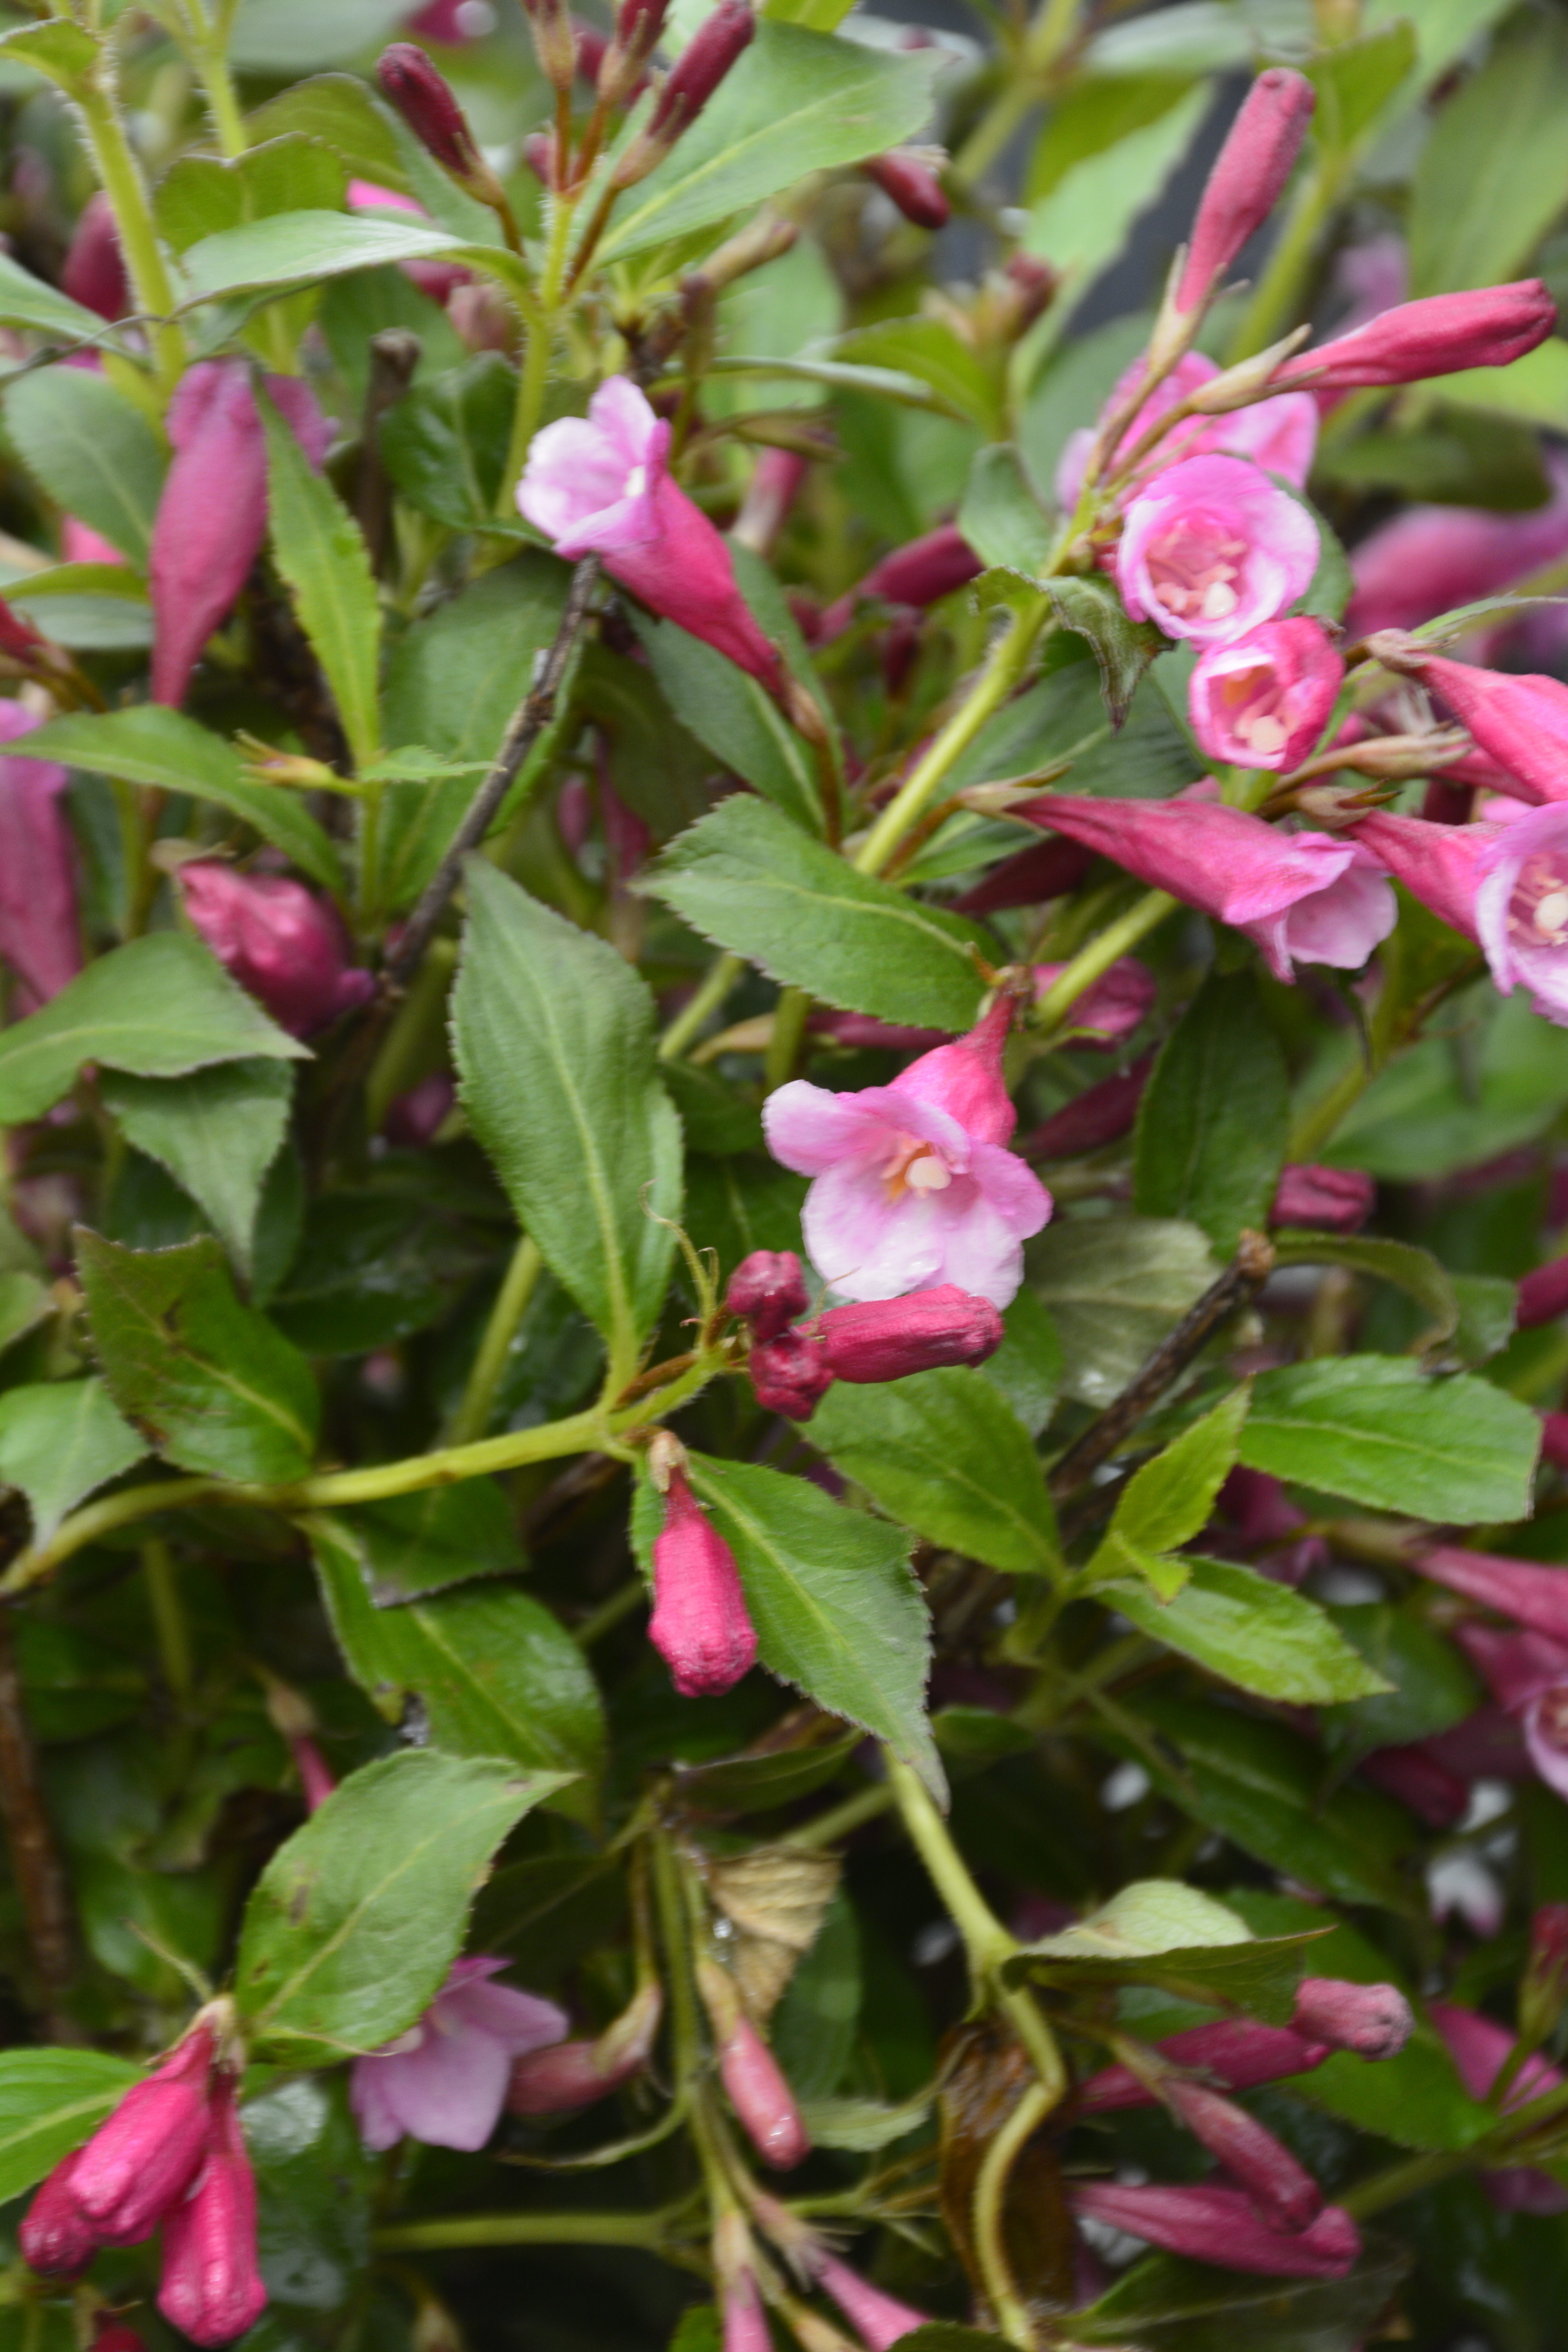 Minuet Weigela Flower Close Up